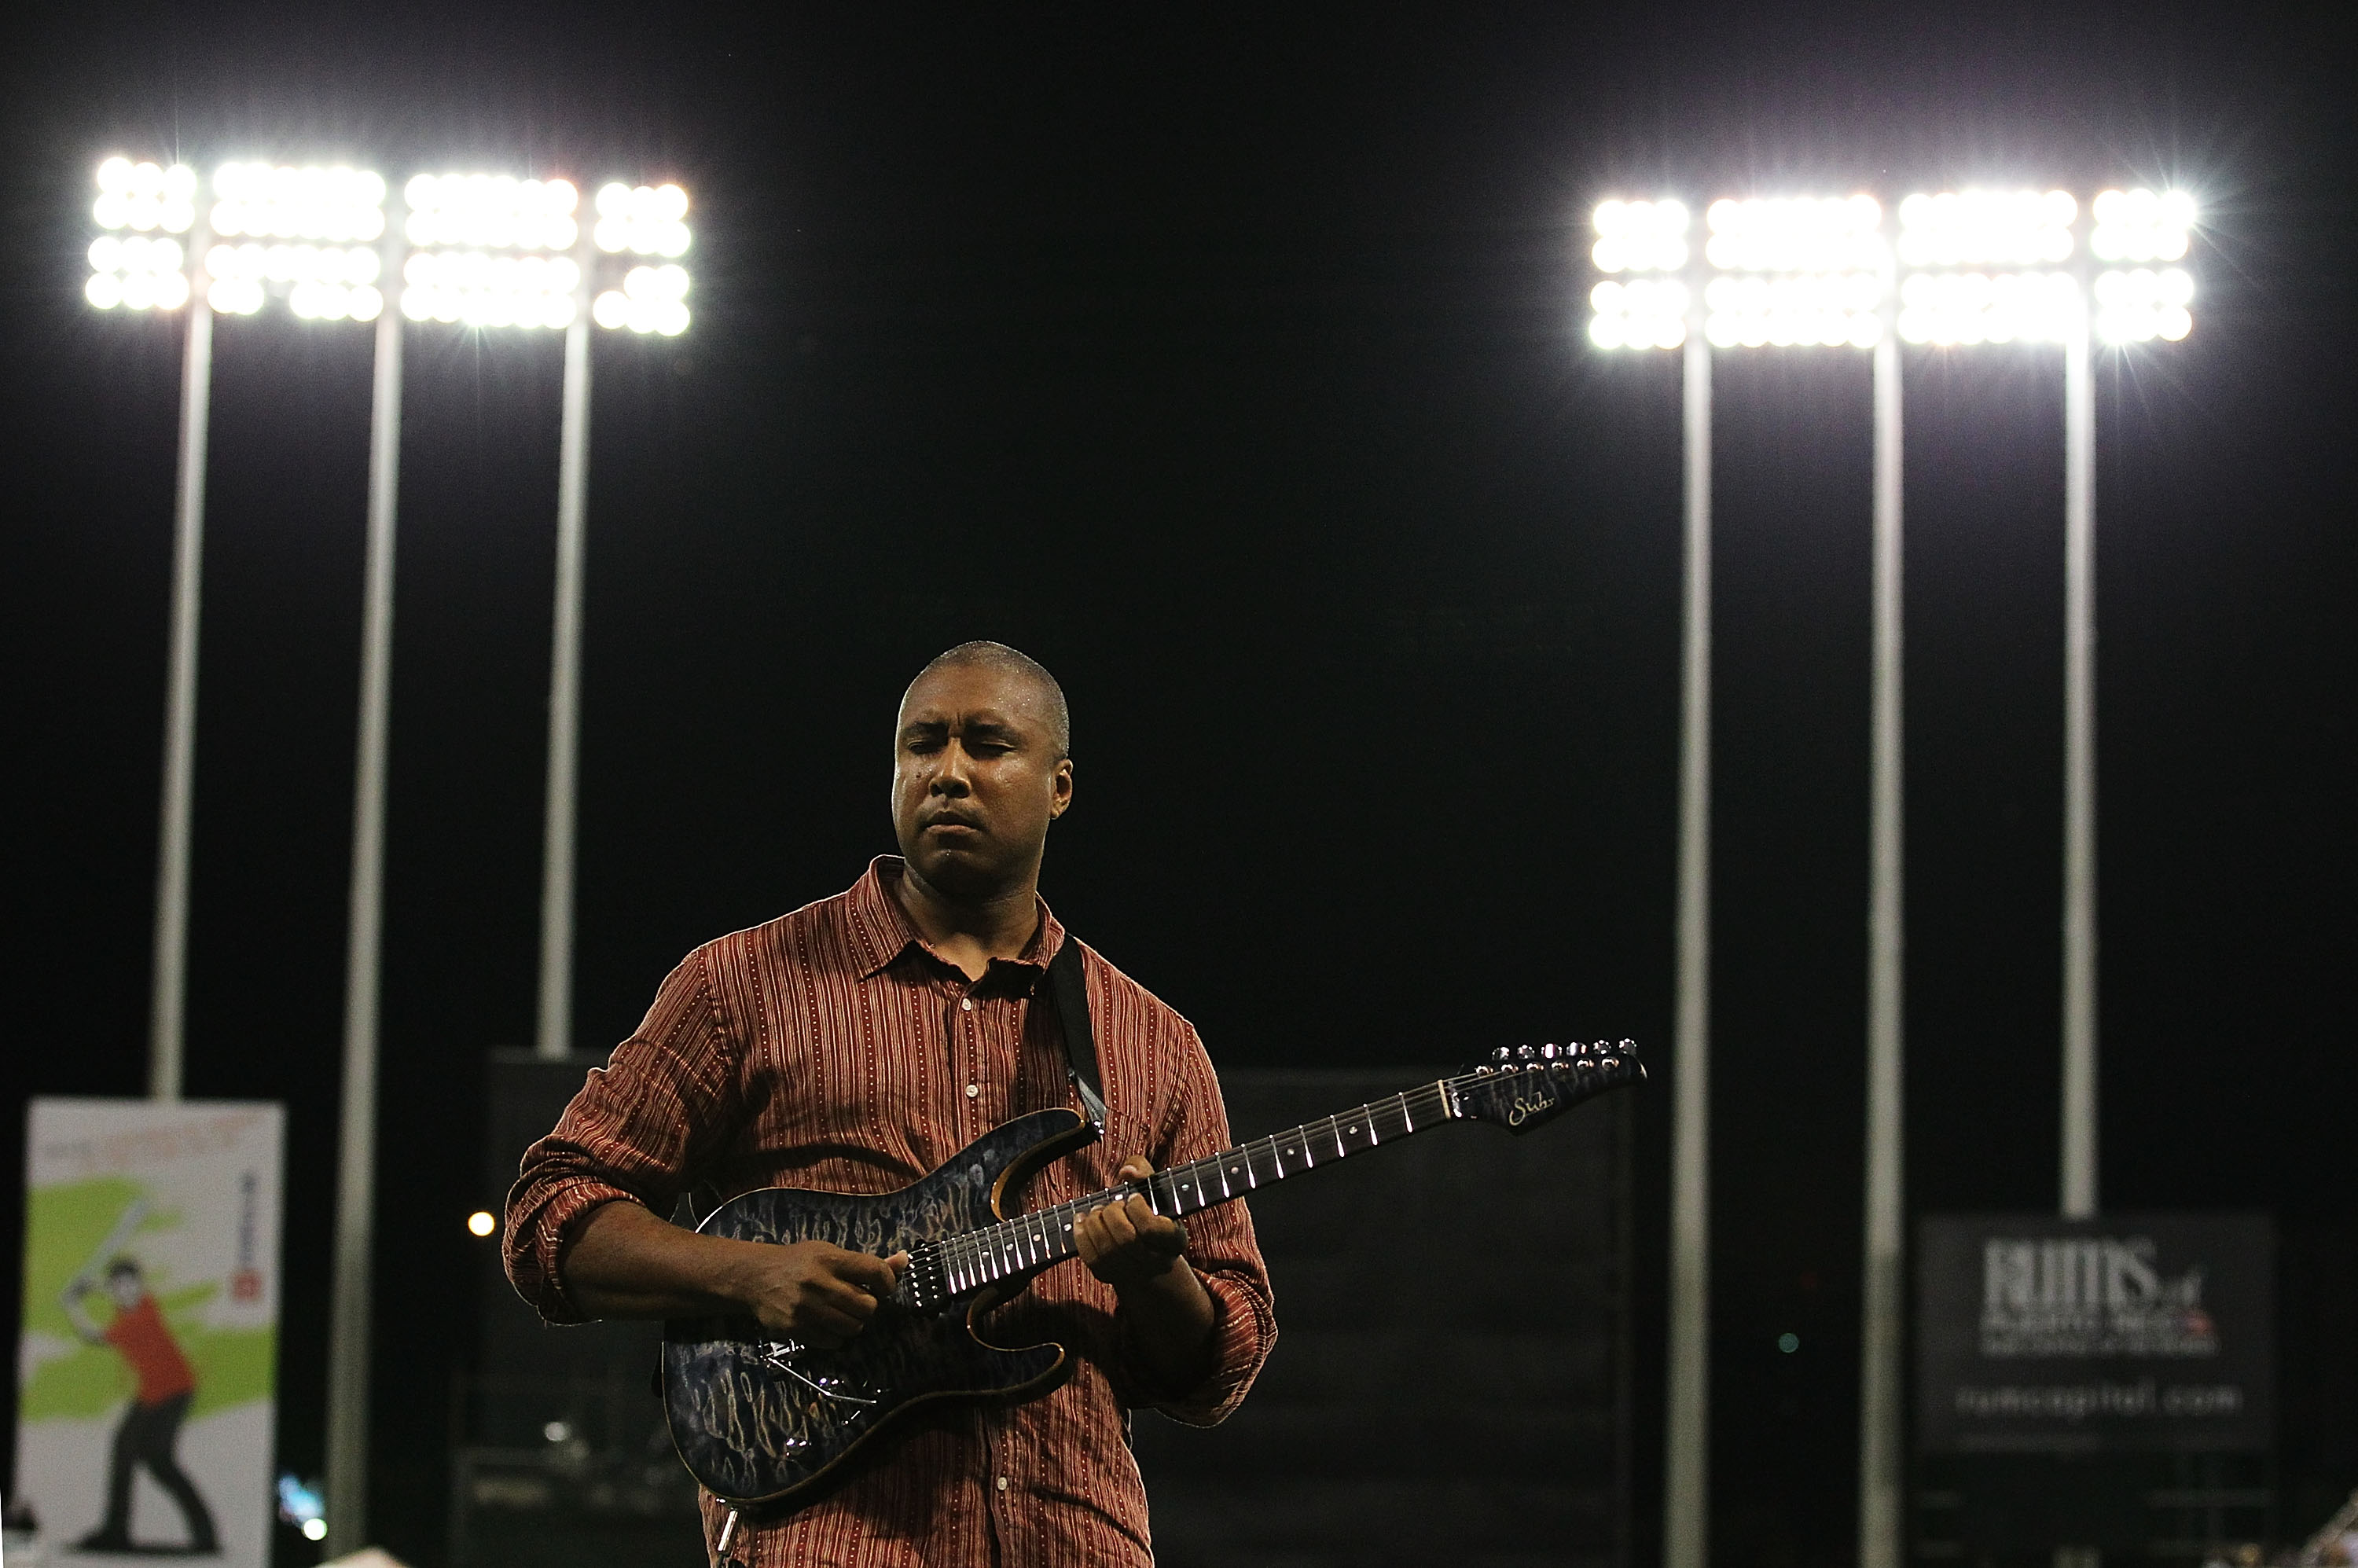 SAN JUAN, PUERTO RICO - JUNE 30:  Musician and former baseball player of the New York Yankees Bernie Williams plays the national anthem on his guitar before the game between the New York Mets and the Florida Marlins at Hiram Bithorn Stadium on June 30, 20